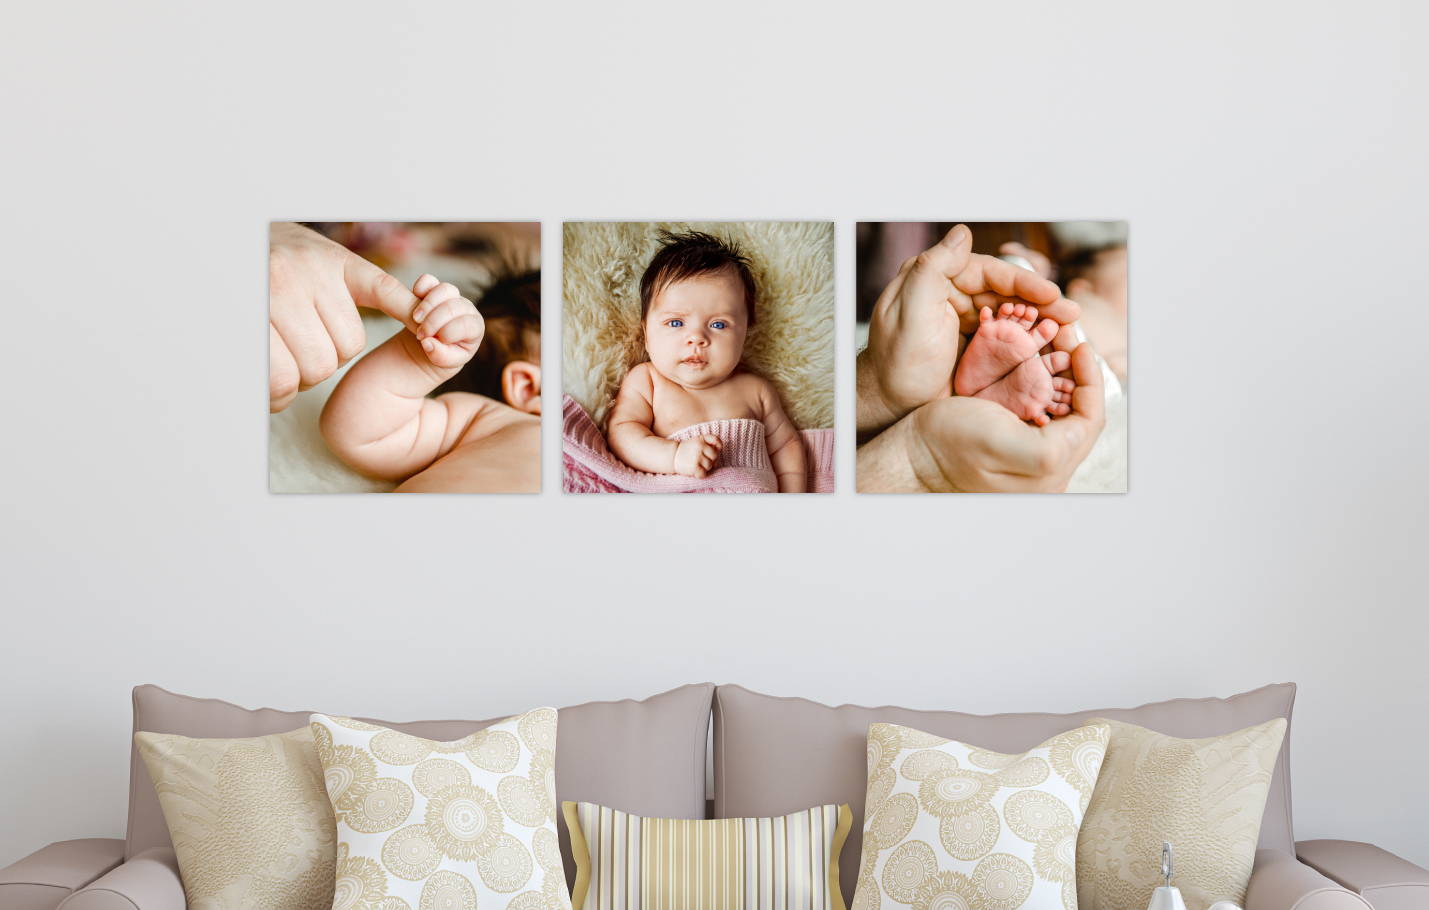 Newborn Baby Session Printed on Split Image & Cluster Canvas Wrap Square Triptych Design